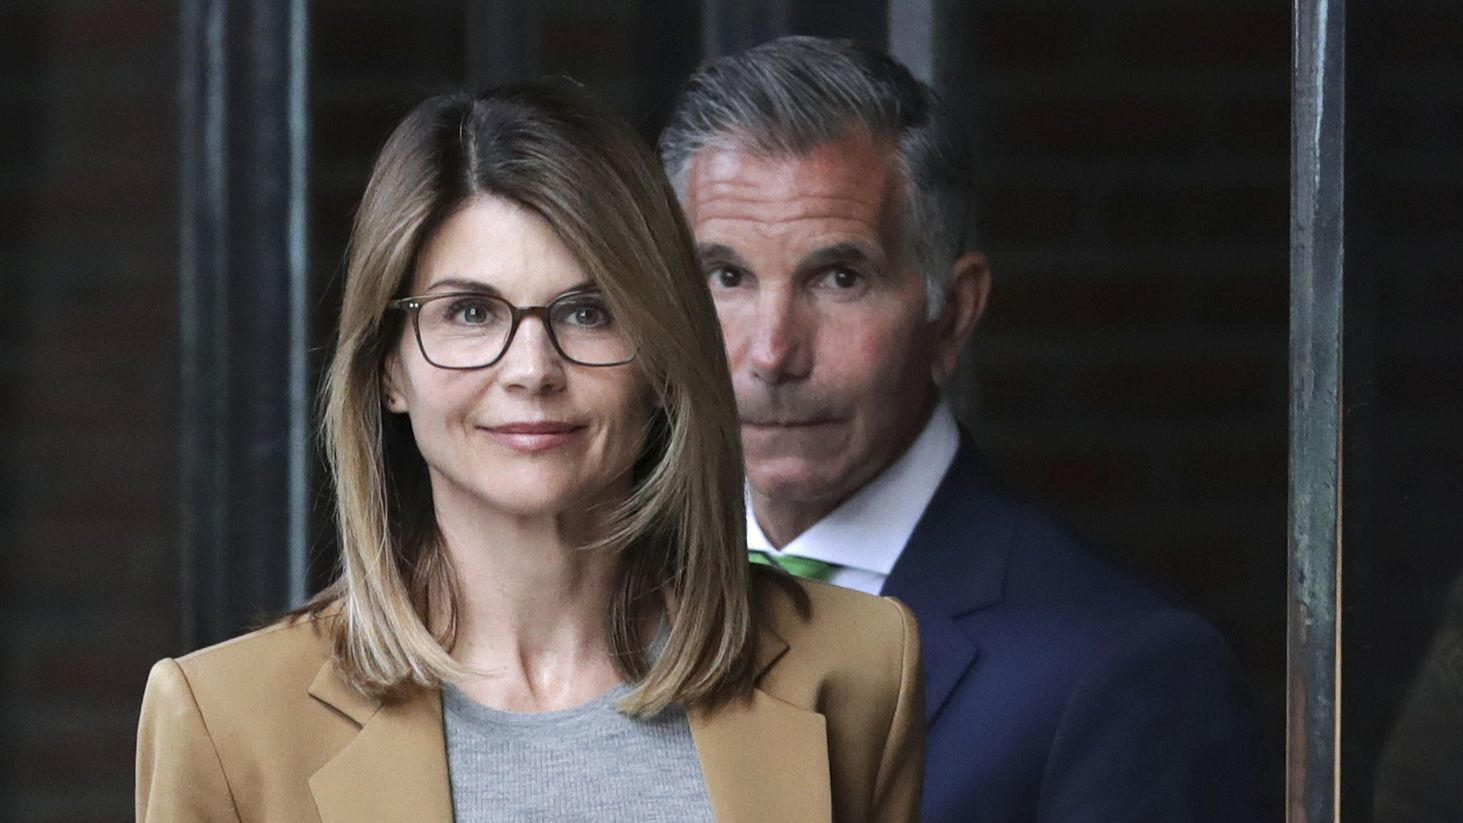 Lori Loughlin told Rick Singer her daughters 'love USC' months before arrest in admissions scandal